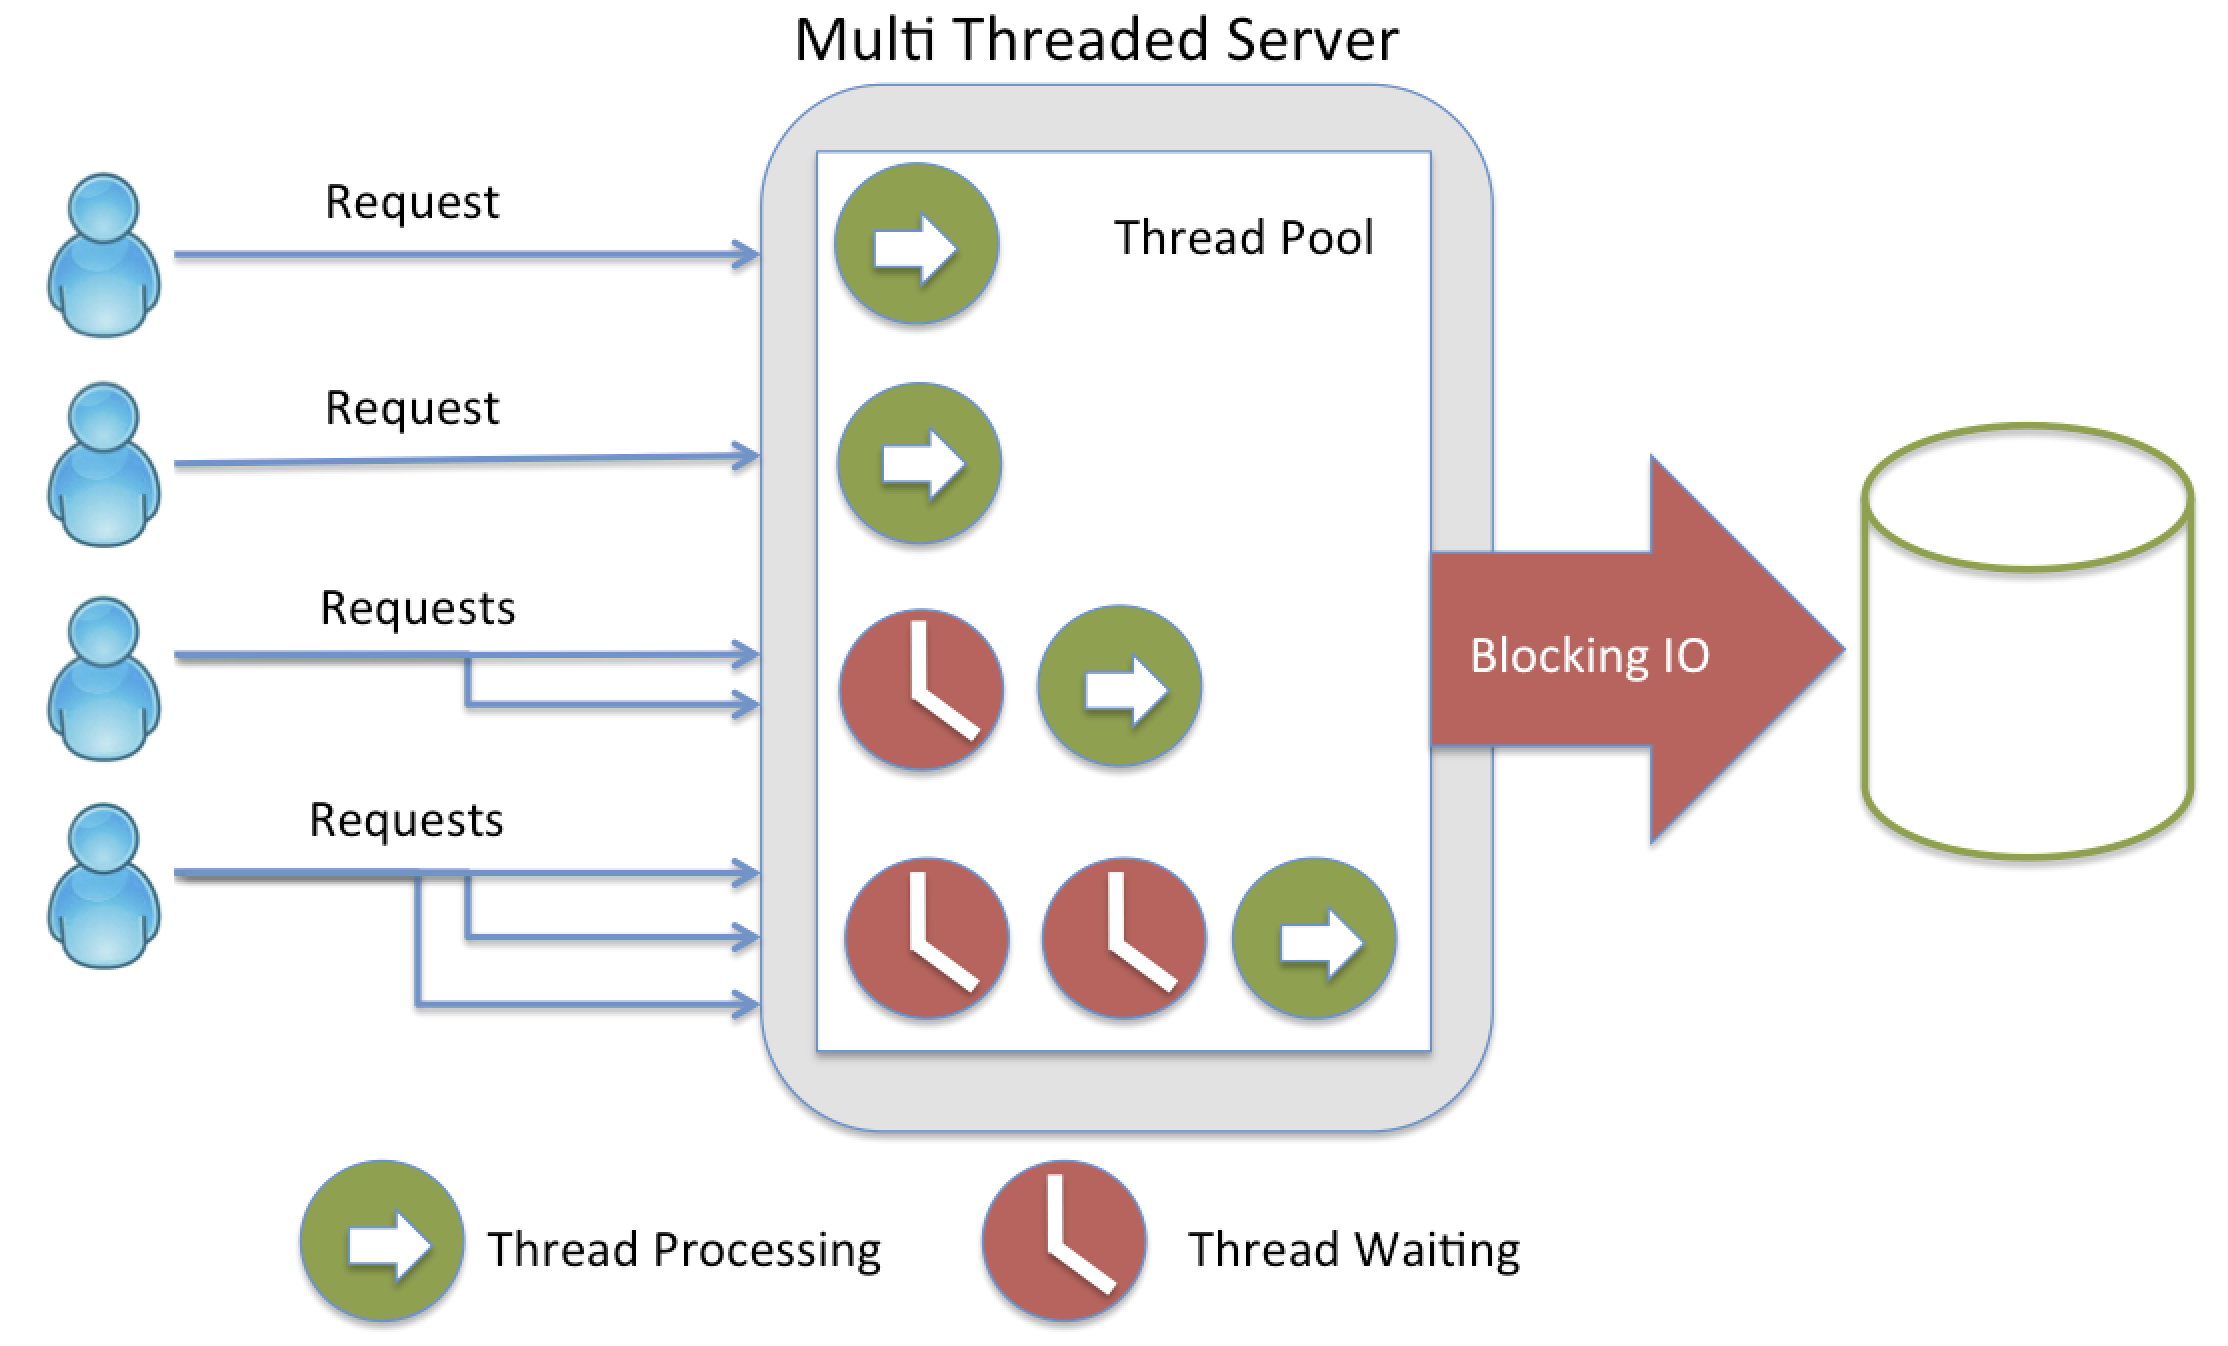 http://adrianmejia.com/images/threading_java.png